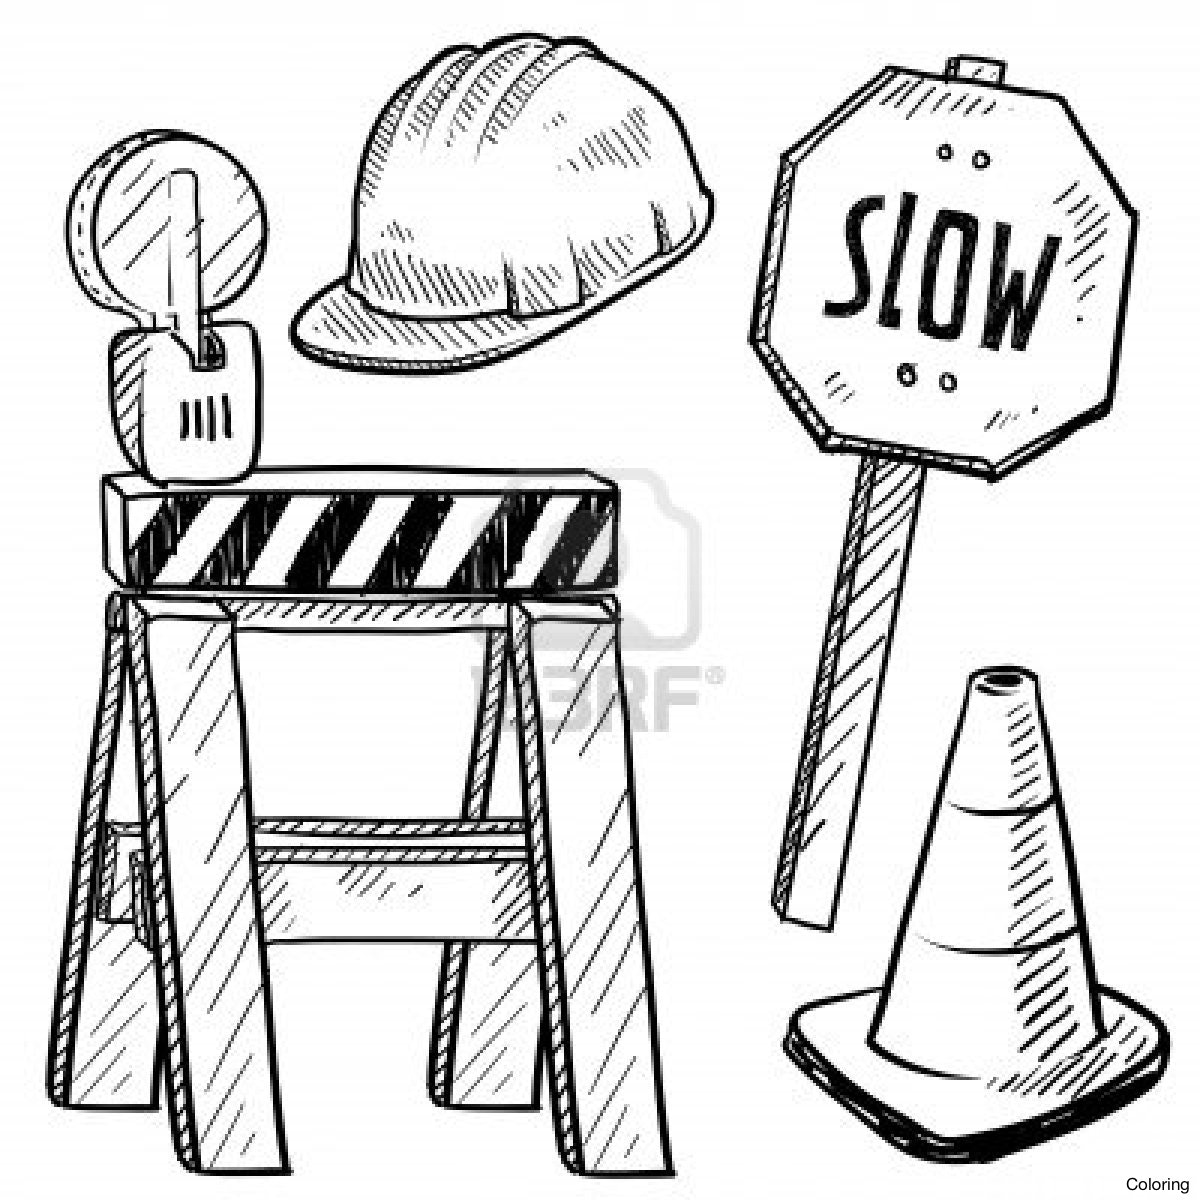 Stop Sign Drawing at GetDrawings.com | Free for personal use Stop ...